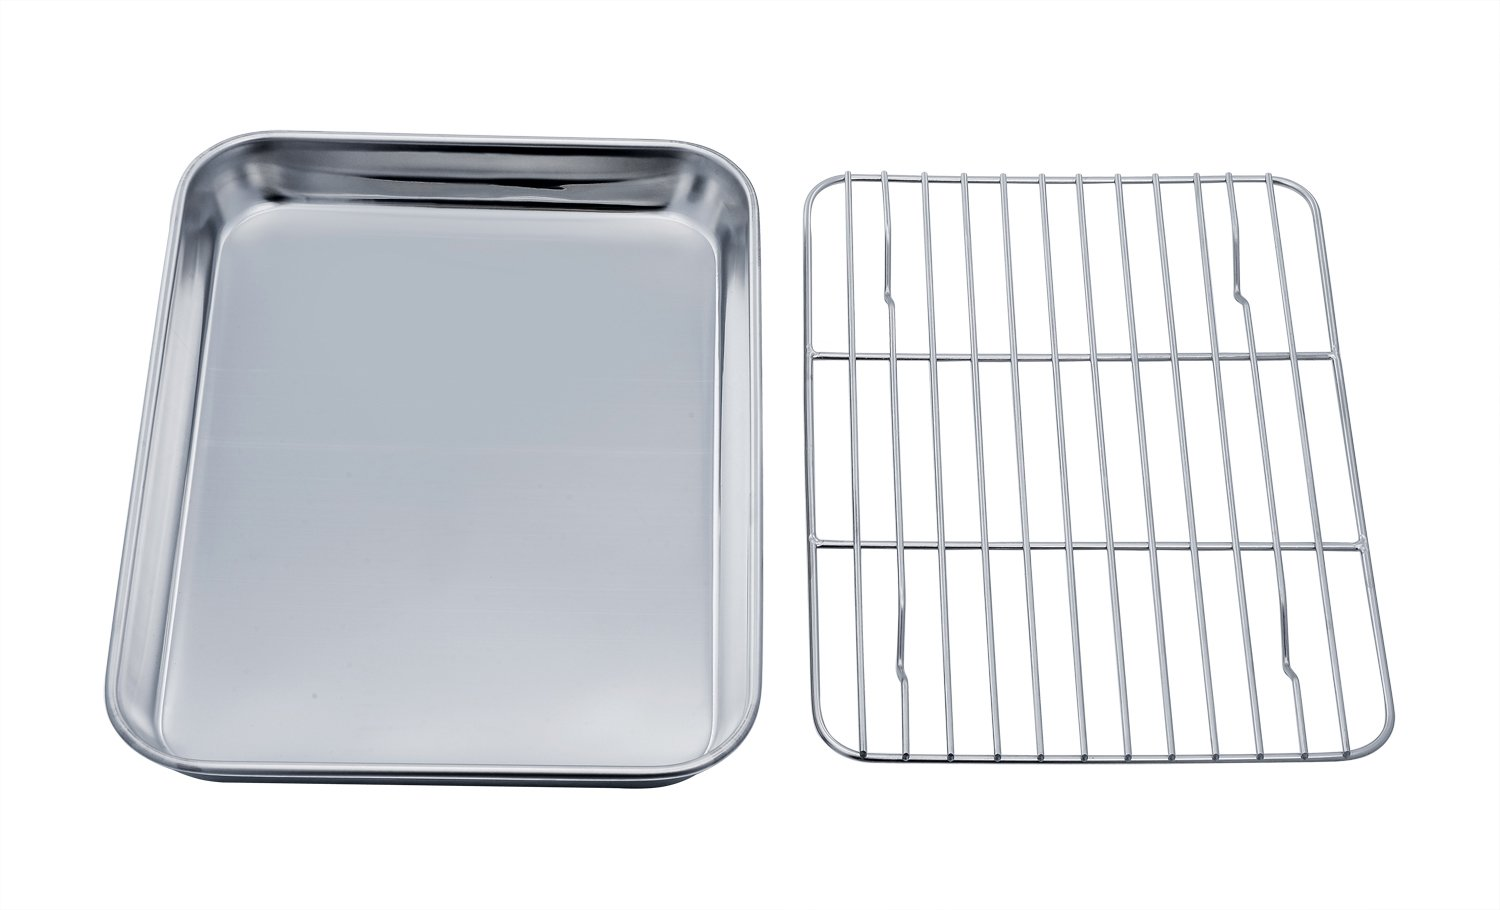 TeamFar Toaster Oven Tray and Rack Set, Stainless Steel Toaster Oven Pan Broiler Pan, Compact 7''x9''x1'', Non Toxic & Healthy, Easy Clean & Dishwasher Safe by TeamFar (Image #1)